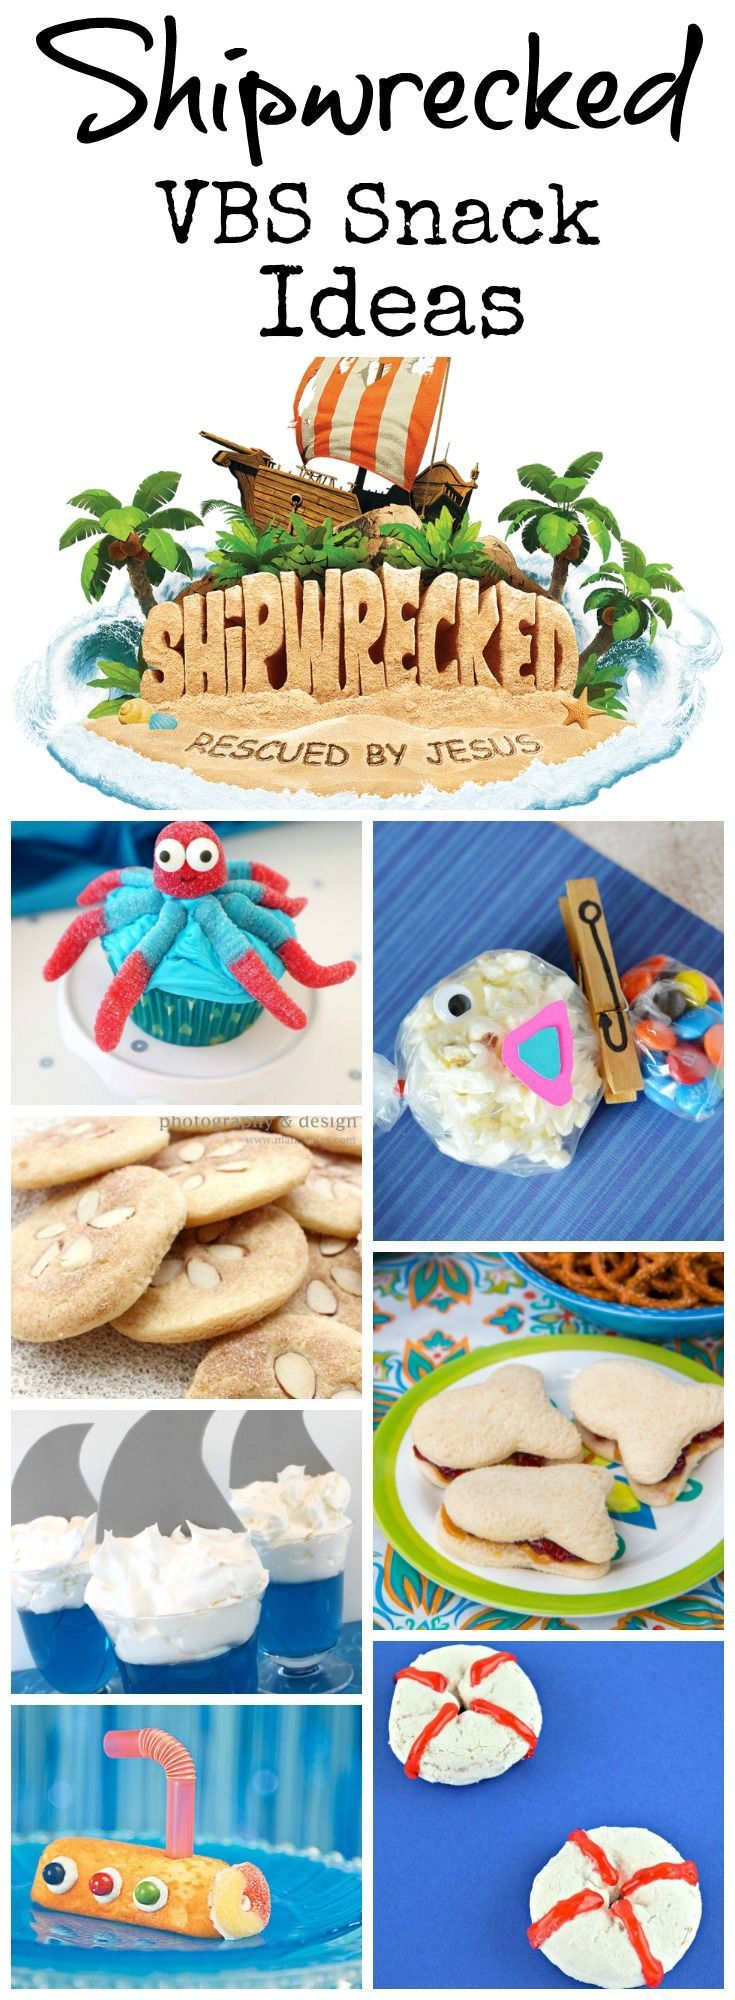 Shipwrecked Vacation Bible School VBS Snack Ideas